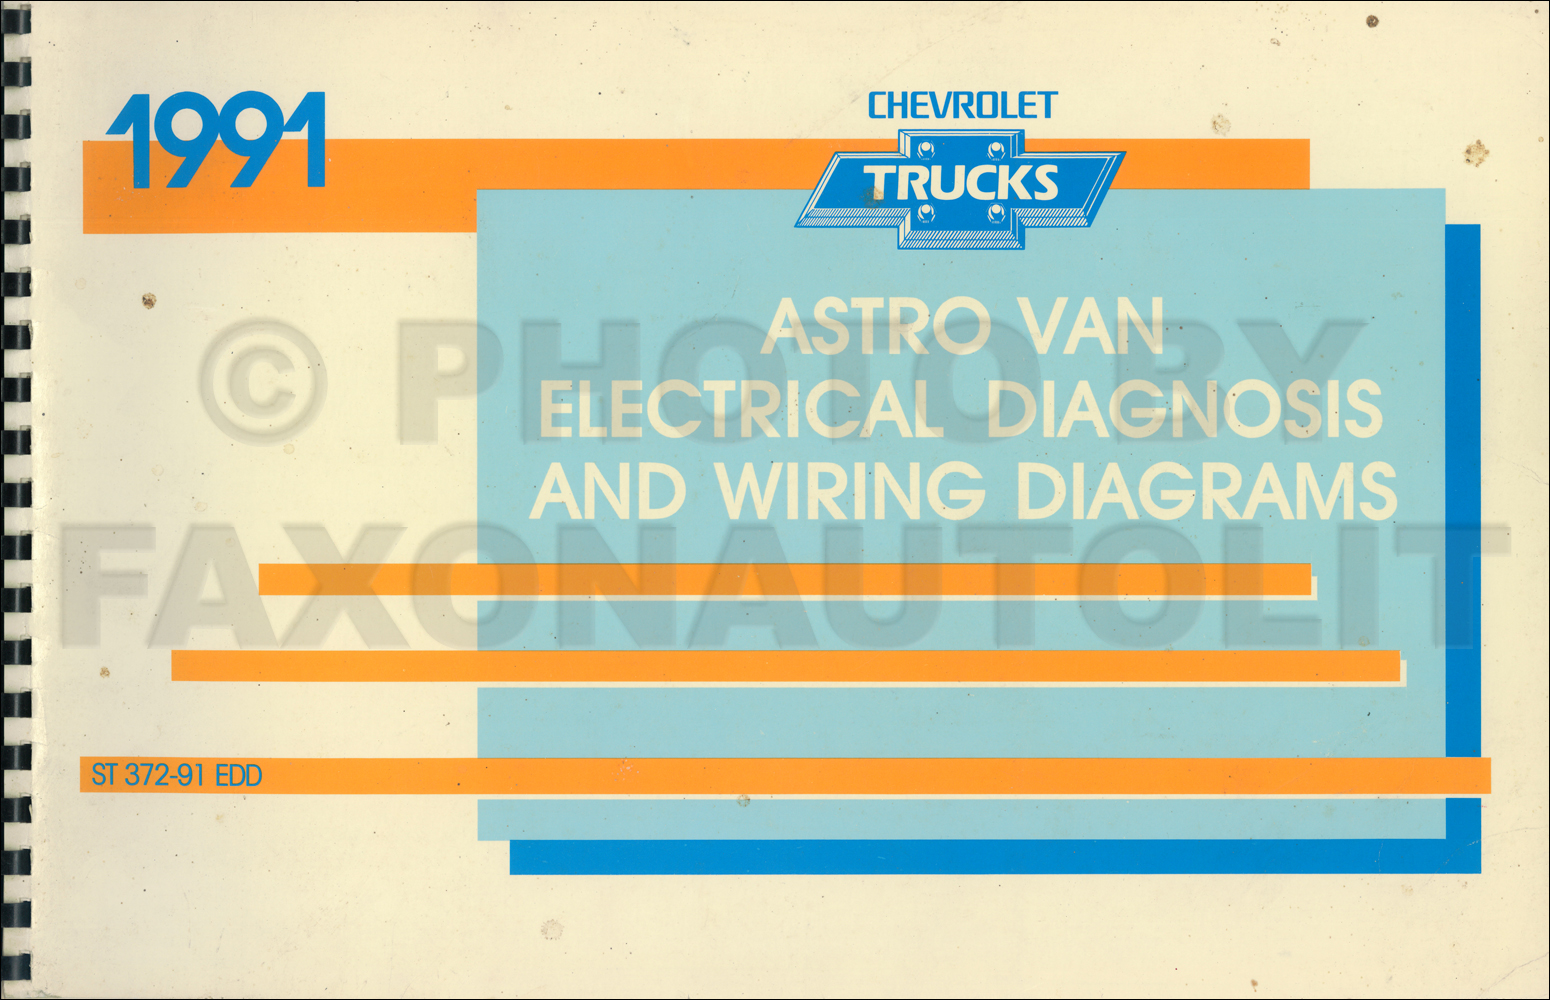 1991 chevy truck wiring diagram electric furnace runs constantly astro van manual original